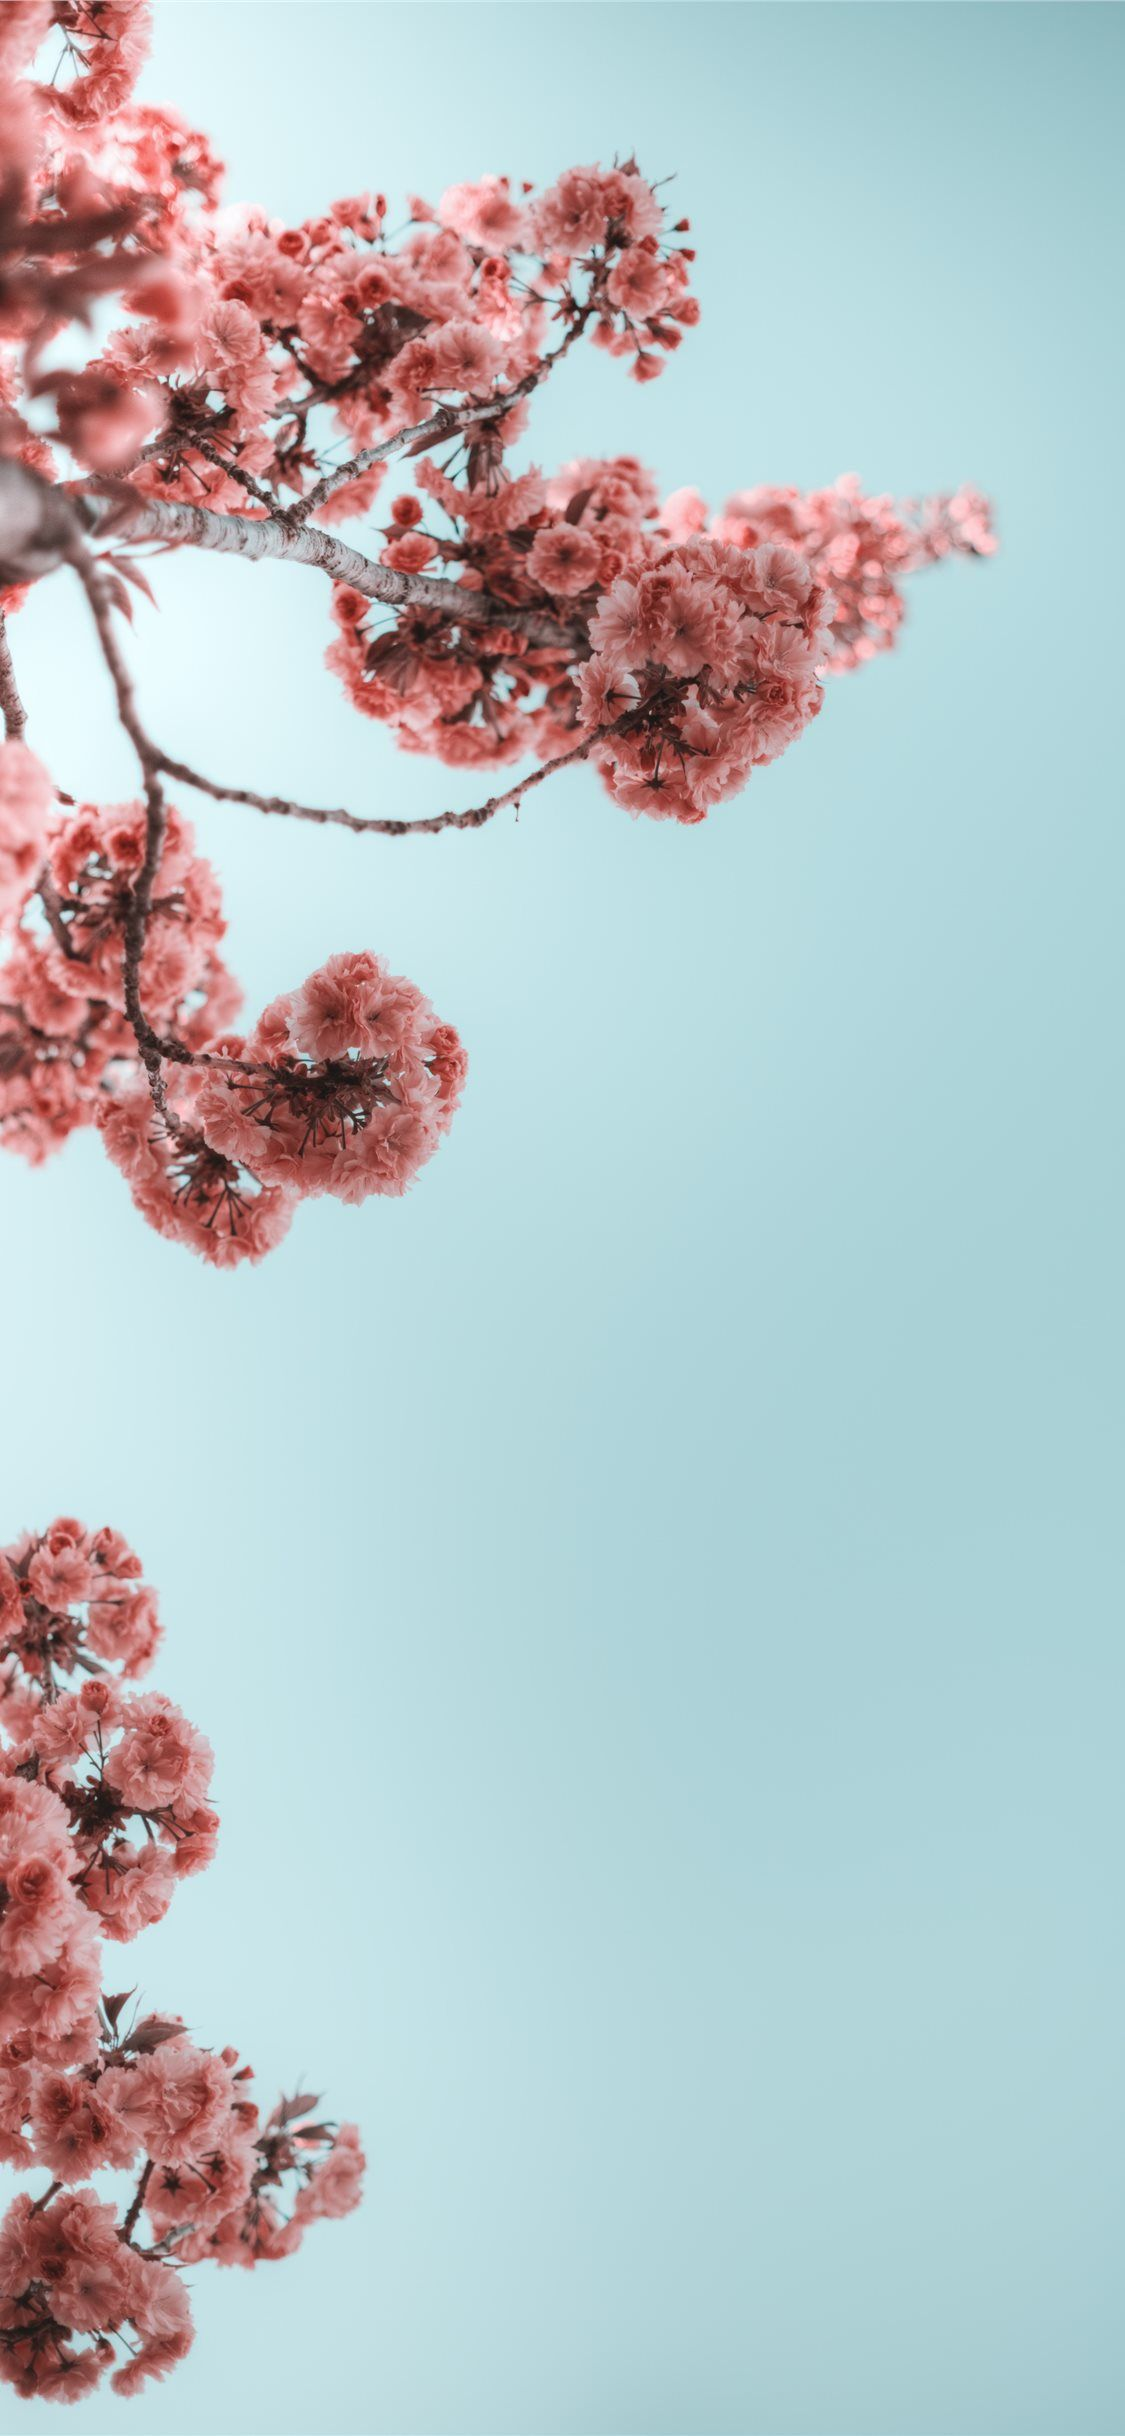 Selective Photograph Of Branches With Flower Flower Cherryblossom Tree Summer Sprin In 2020 Flower Iphone Wallpaper Wallpaper Iphone Summer Cute Flower Wallpapers